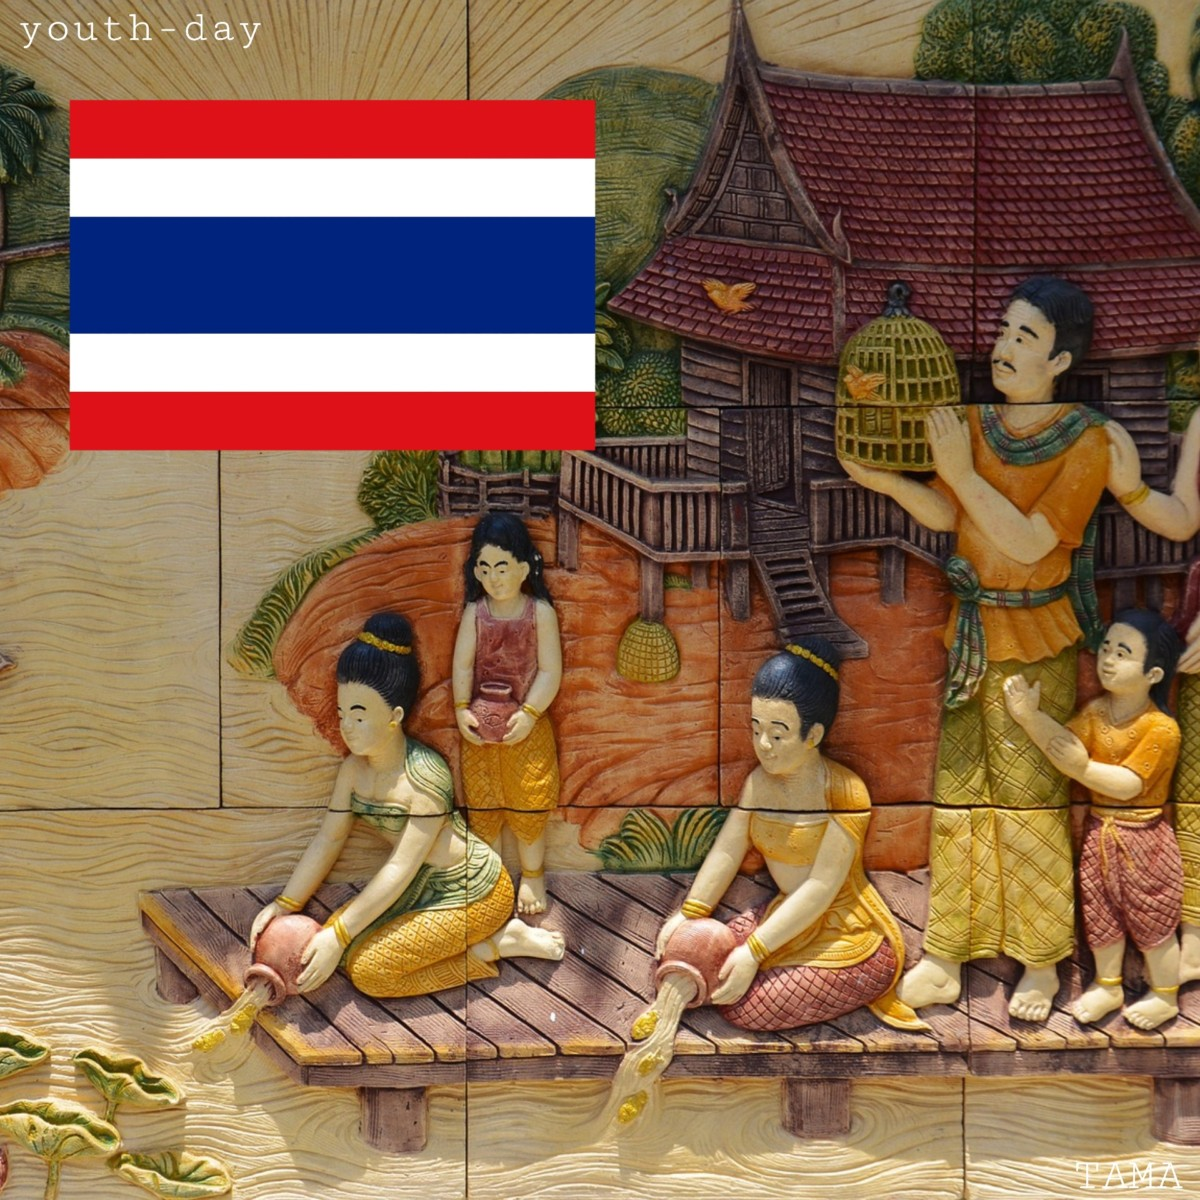 National Youth Day in Thailand